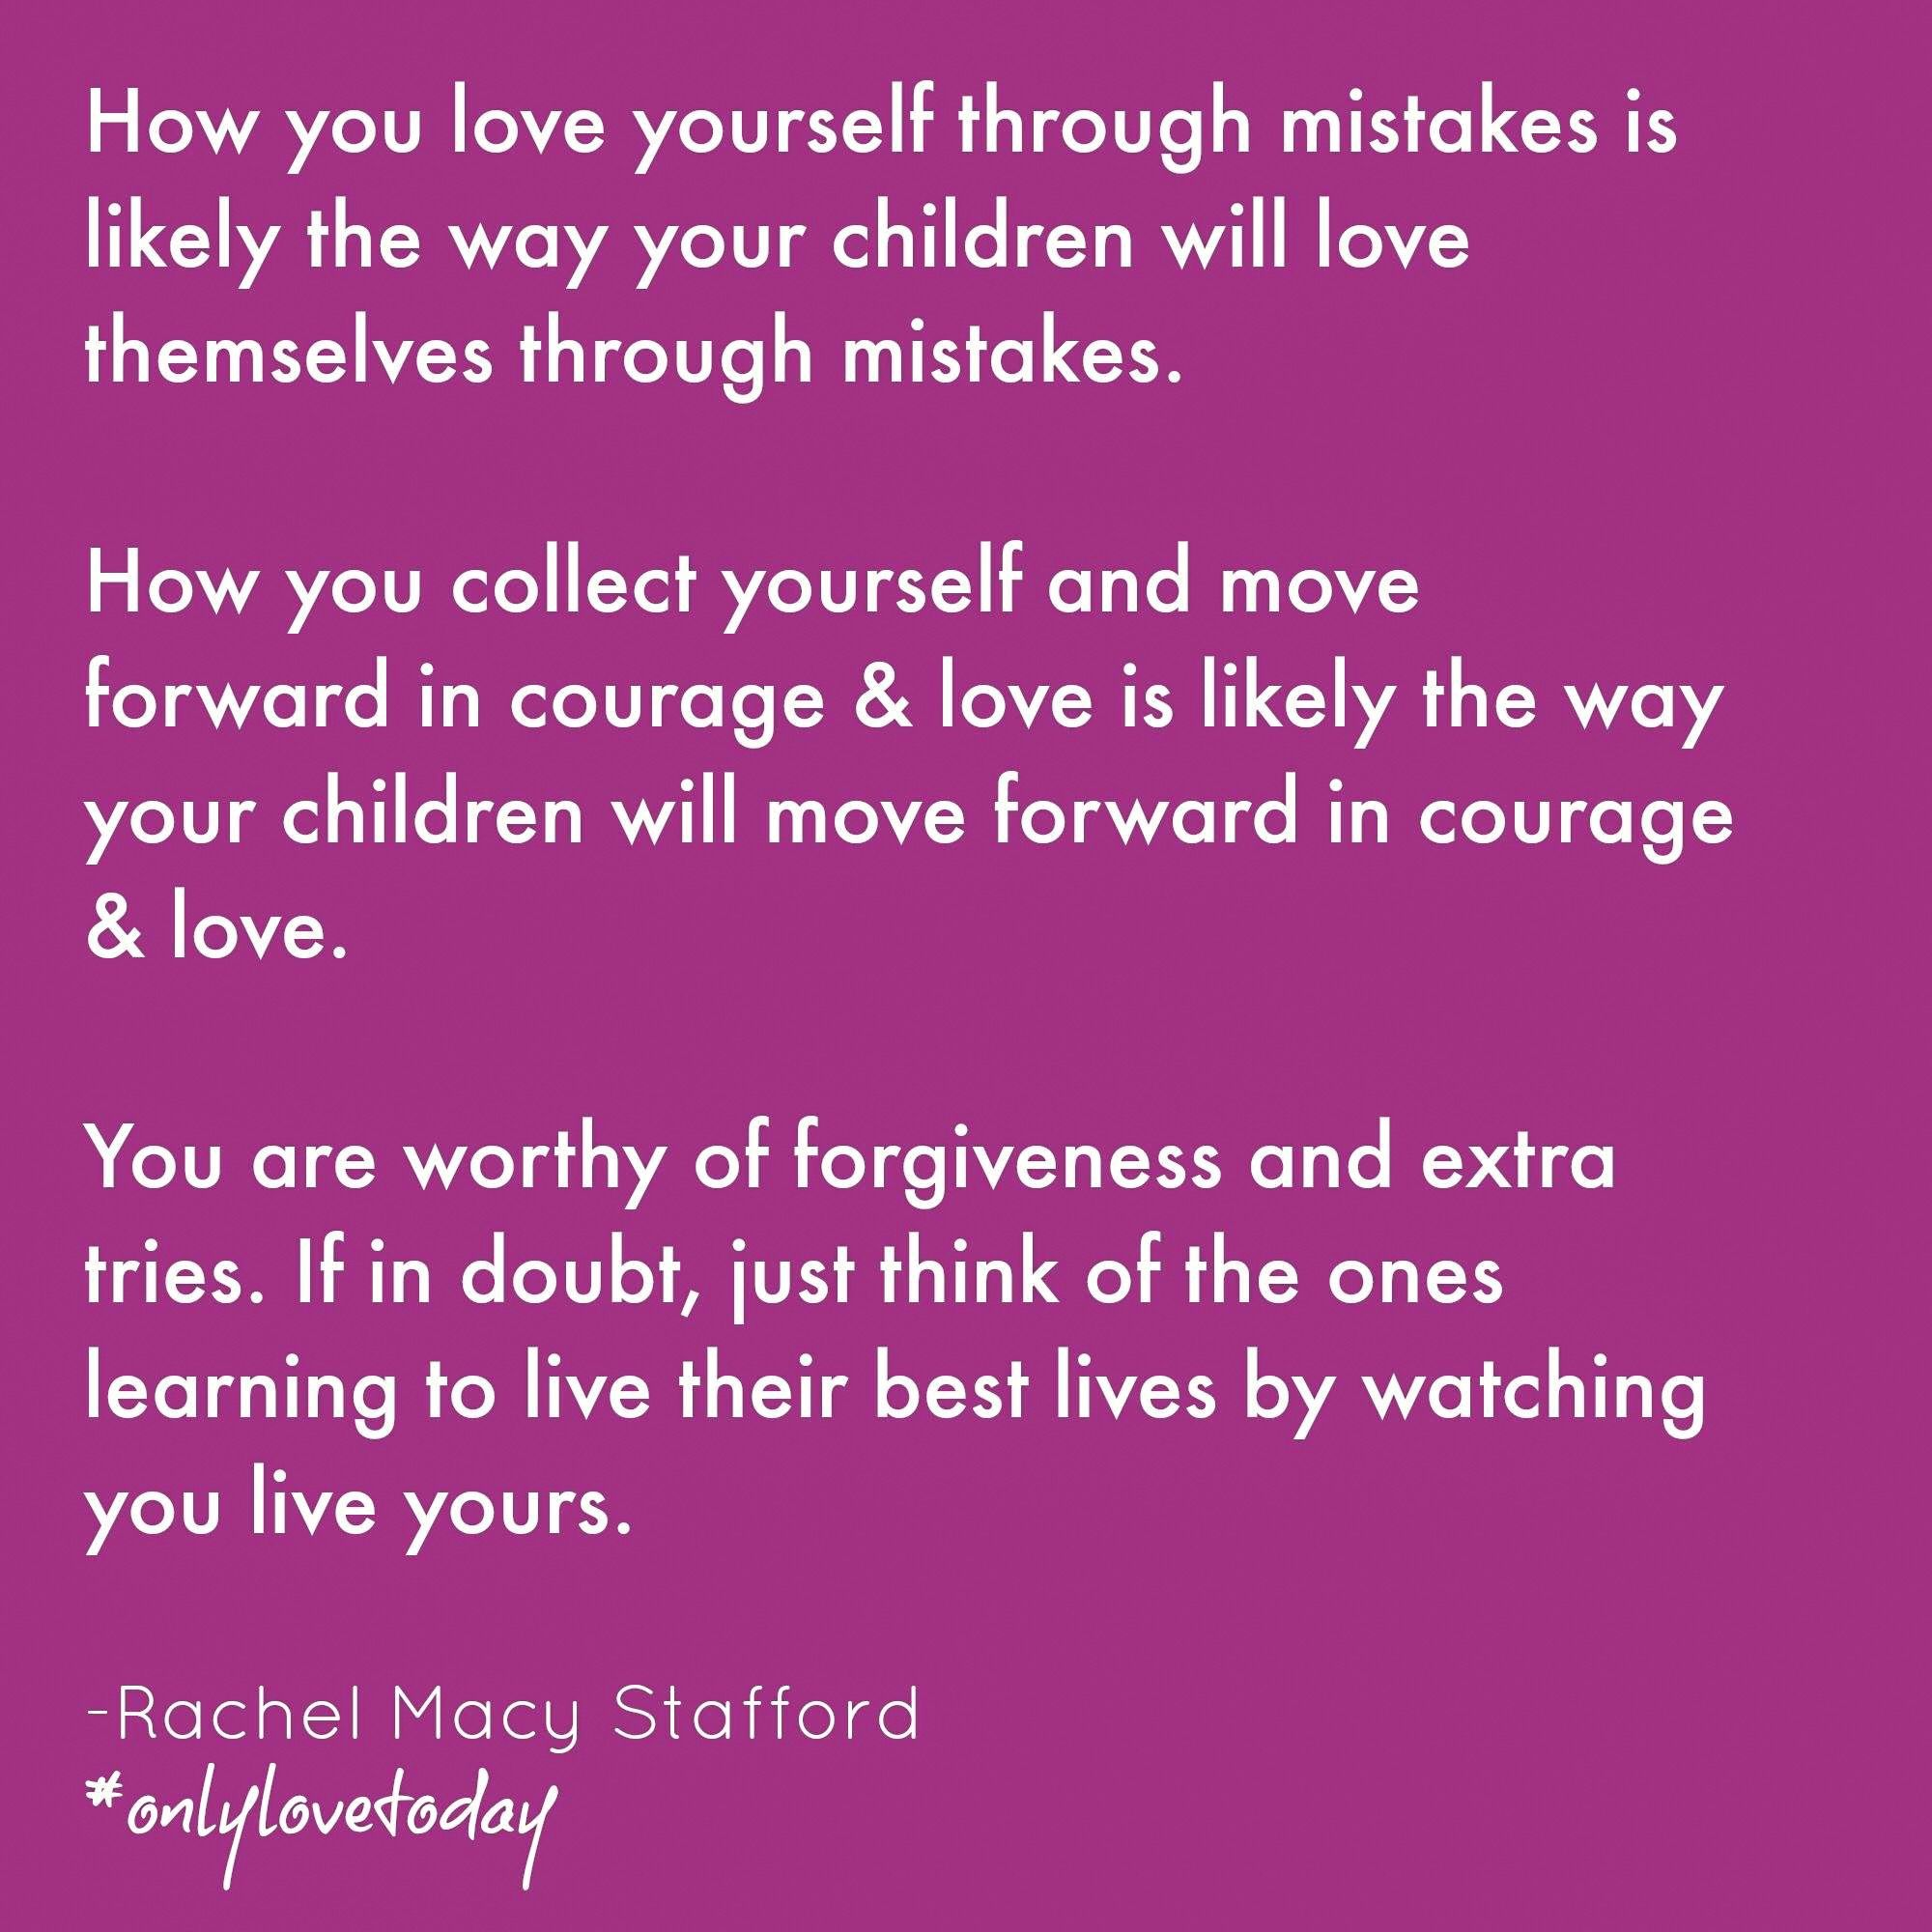 How you love yourself through mistakes is likely the way ...